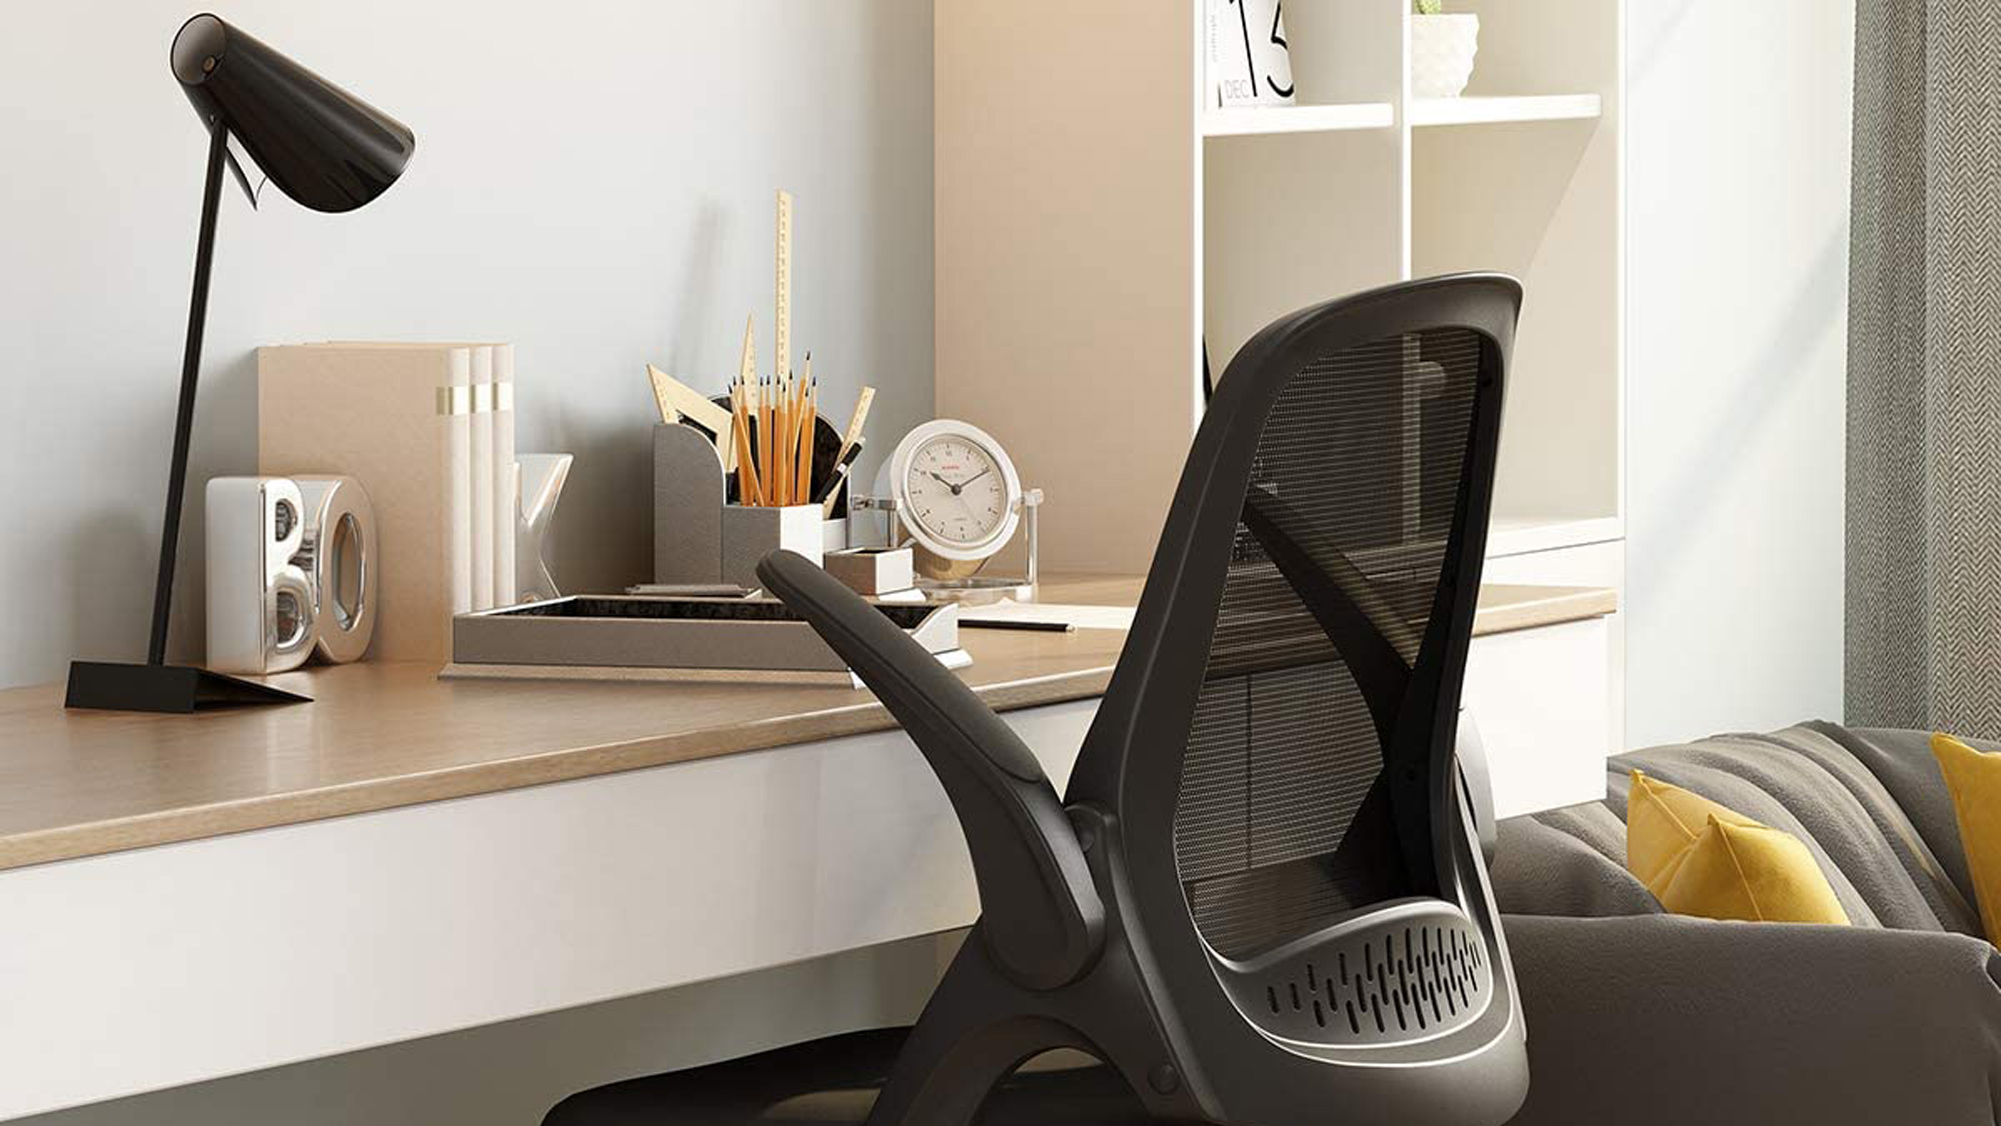 Hbada Office Task Desk Chair Swivel Home Comfort Chairs with Flip-up Arms